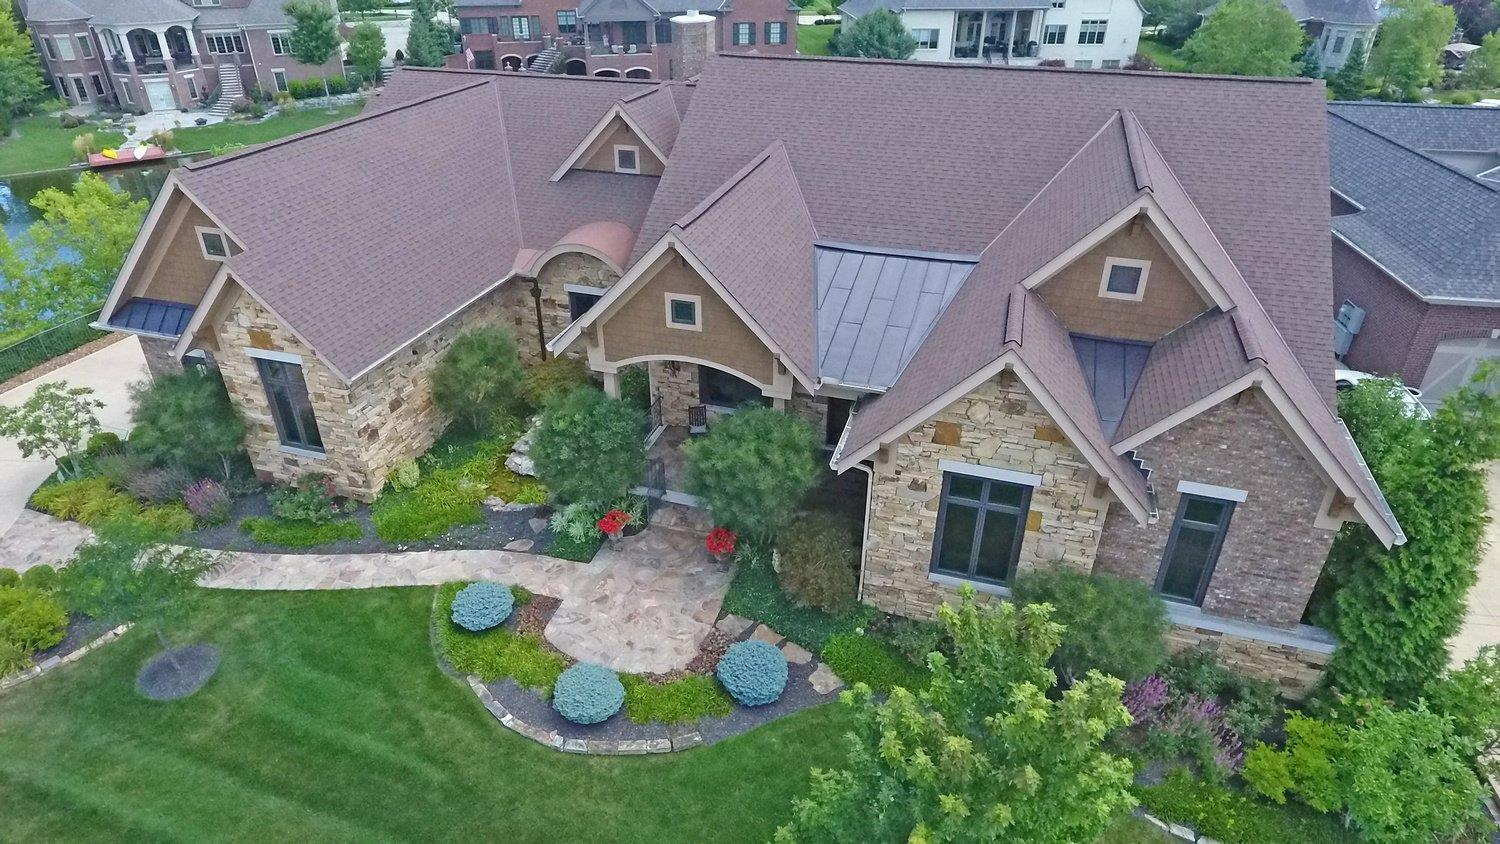 Spectacular ranch style living w/amazing outdoor living & water views from every rm! Grt home for entertaining w/open flr pln. Lux 1st floor MA suite. Flex rm on first flr=bdrm/arts & crafts. Fin W/out LL w/3 bedrooms, studio, exer rm, large media & game rms. Prof landscaped w/LL water view platform. Covered & uncov patio w/fpl & grill/cooking area